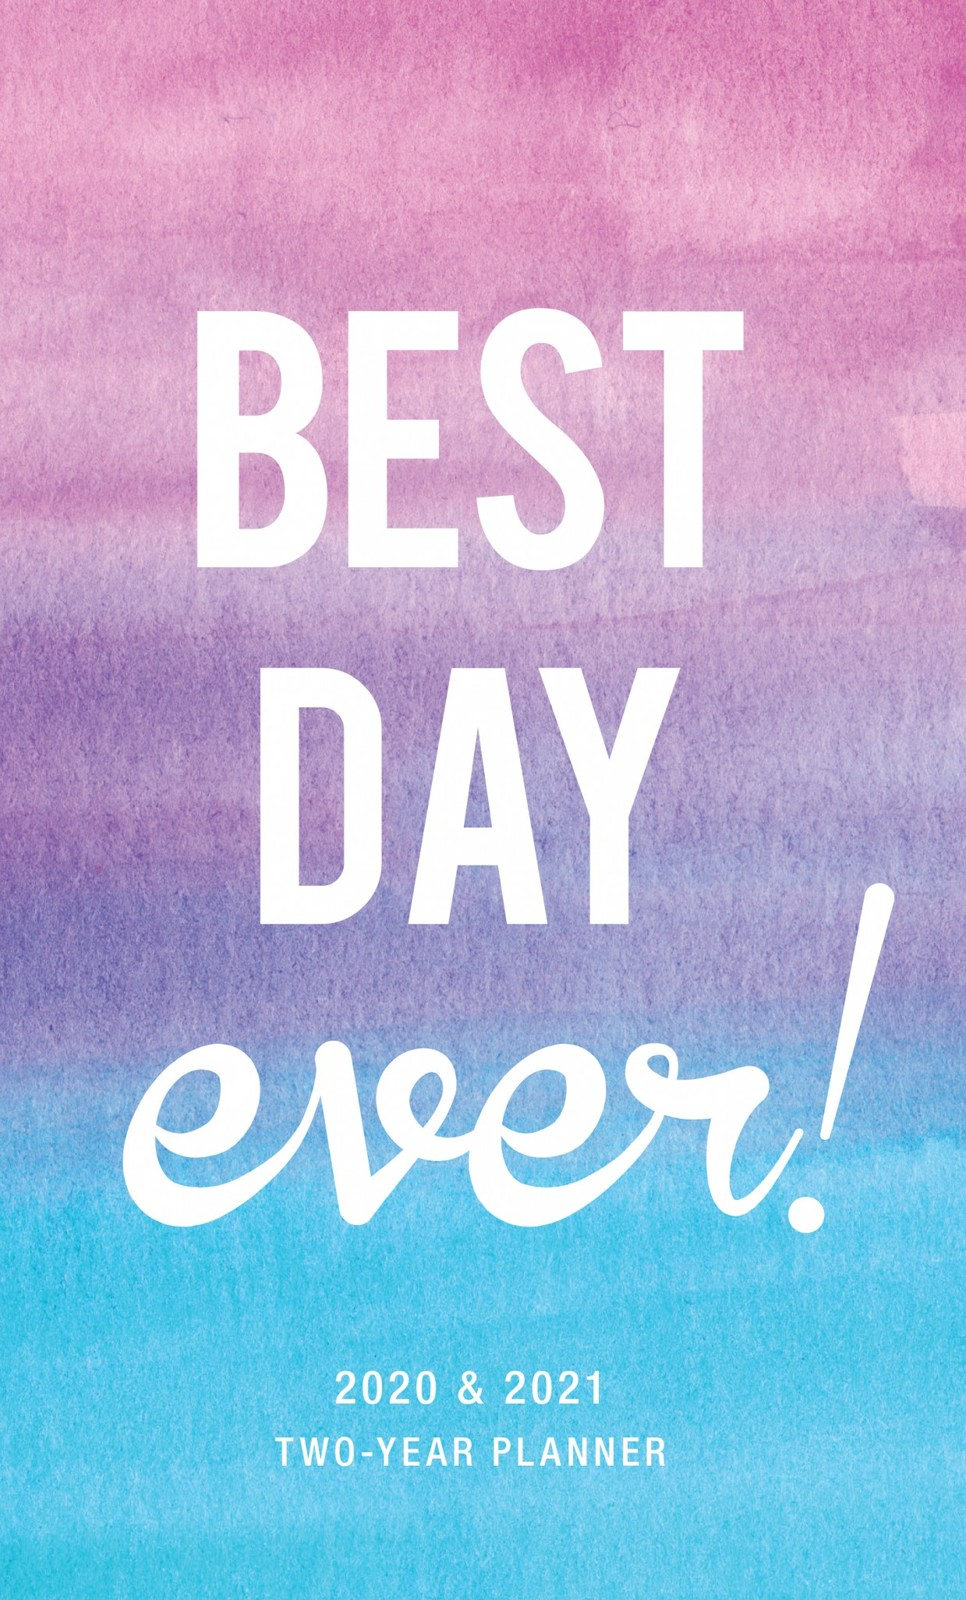 Best Day Ever 2020 2 Year Pocket Planner 2 Year image